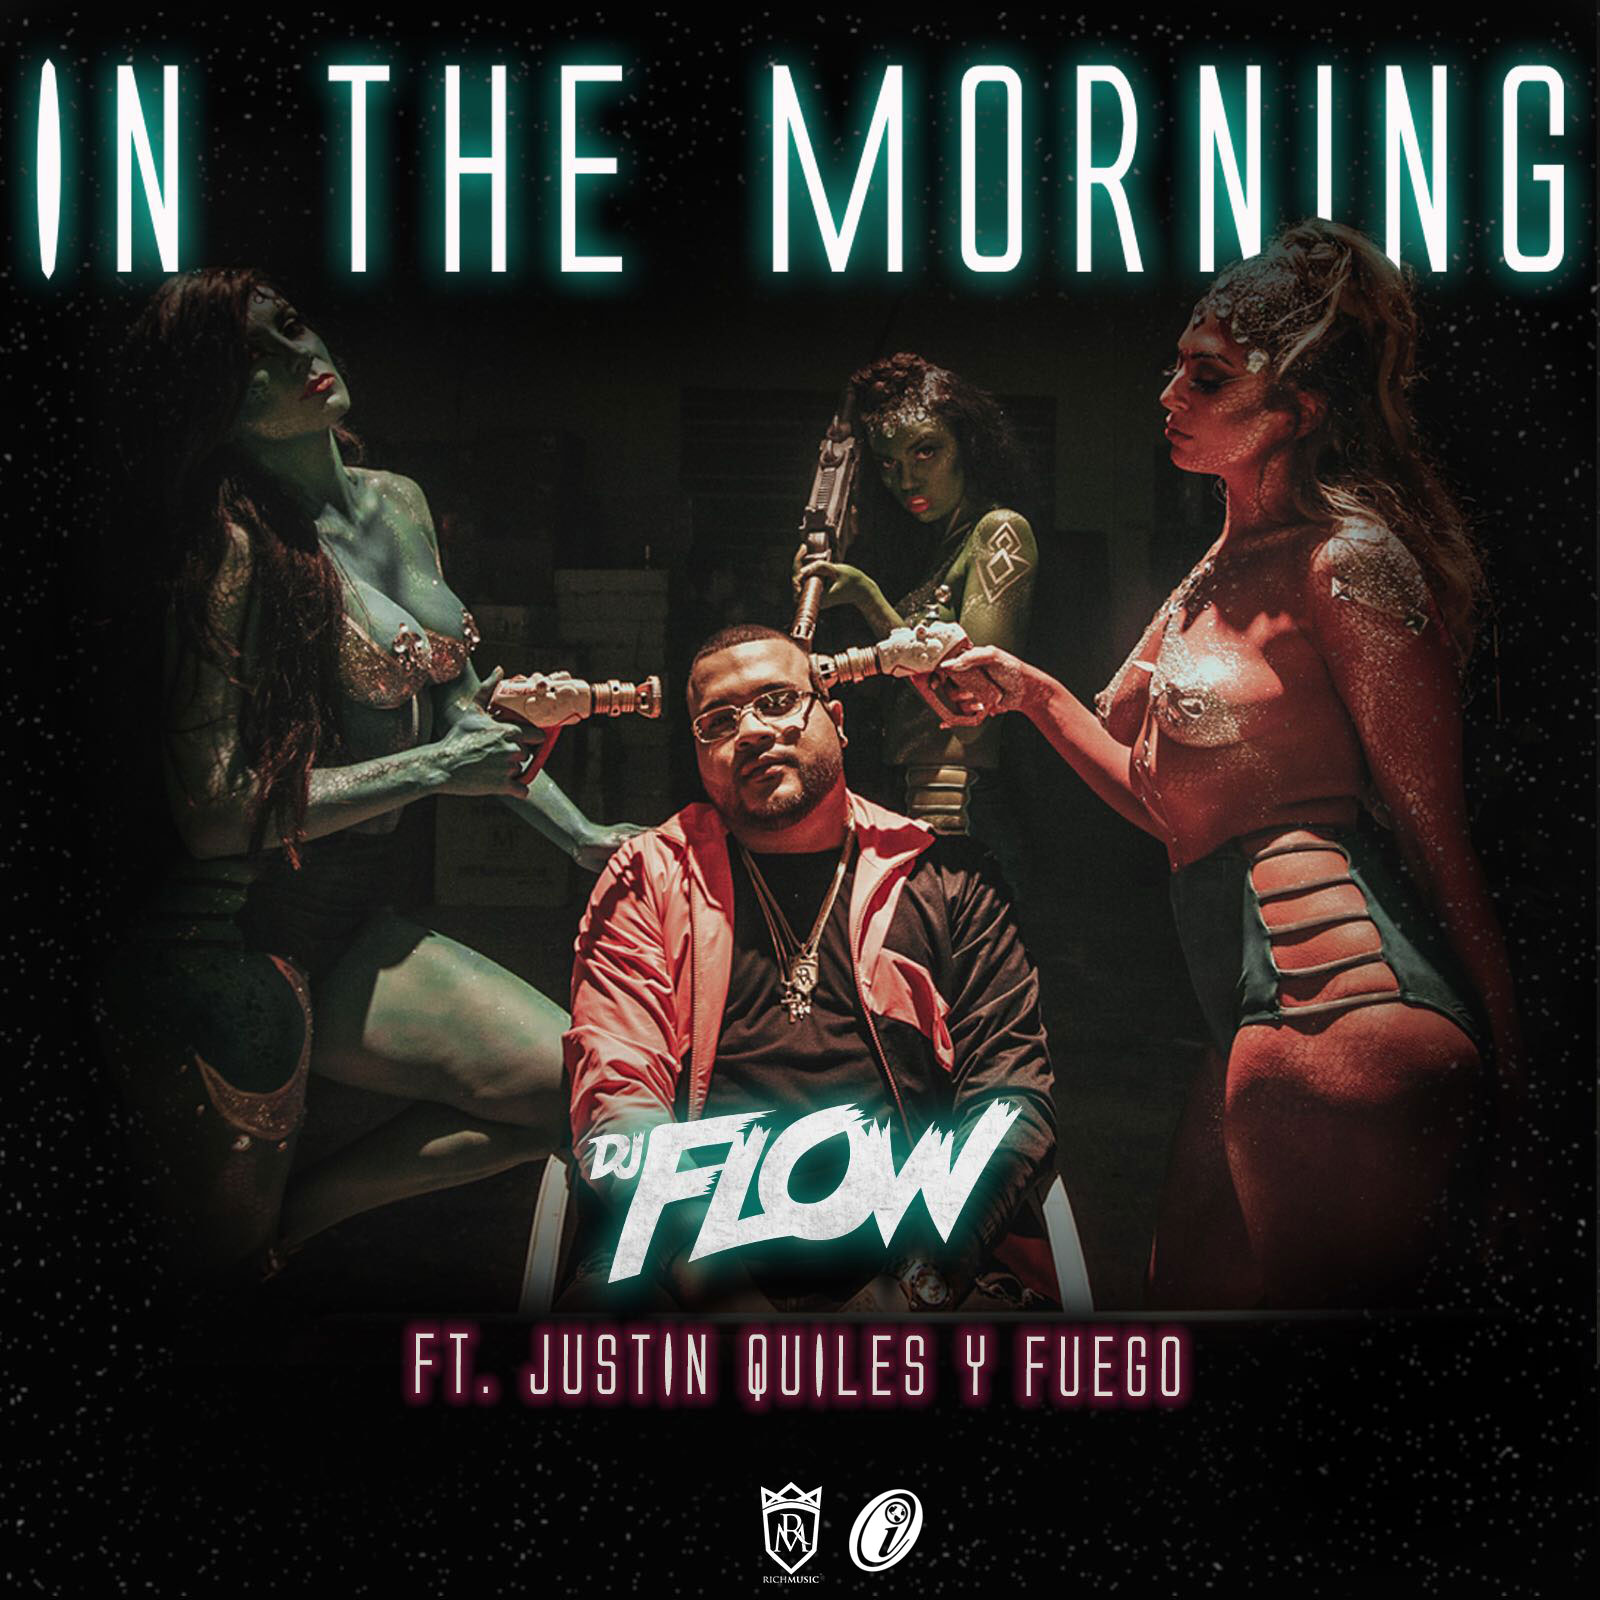 Dj Flow Ft. Justin Quiles Y Fuego - In The Morning